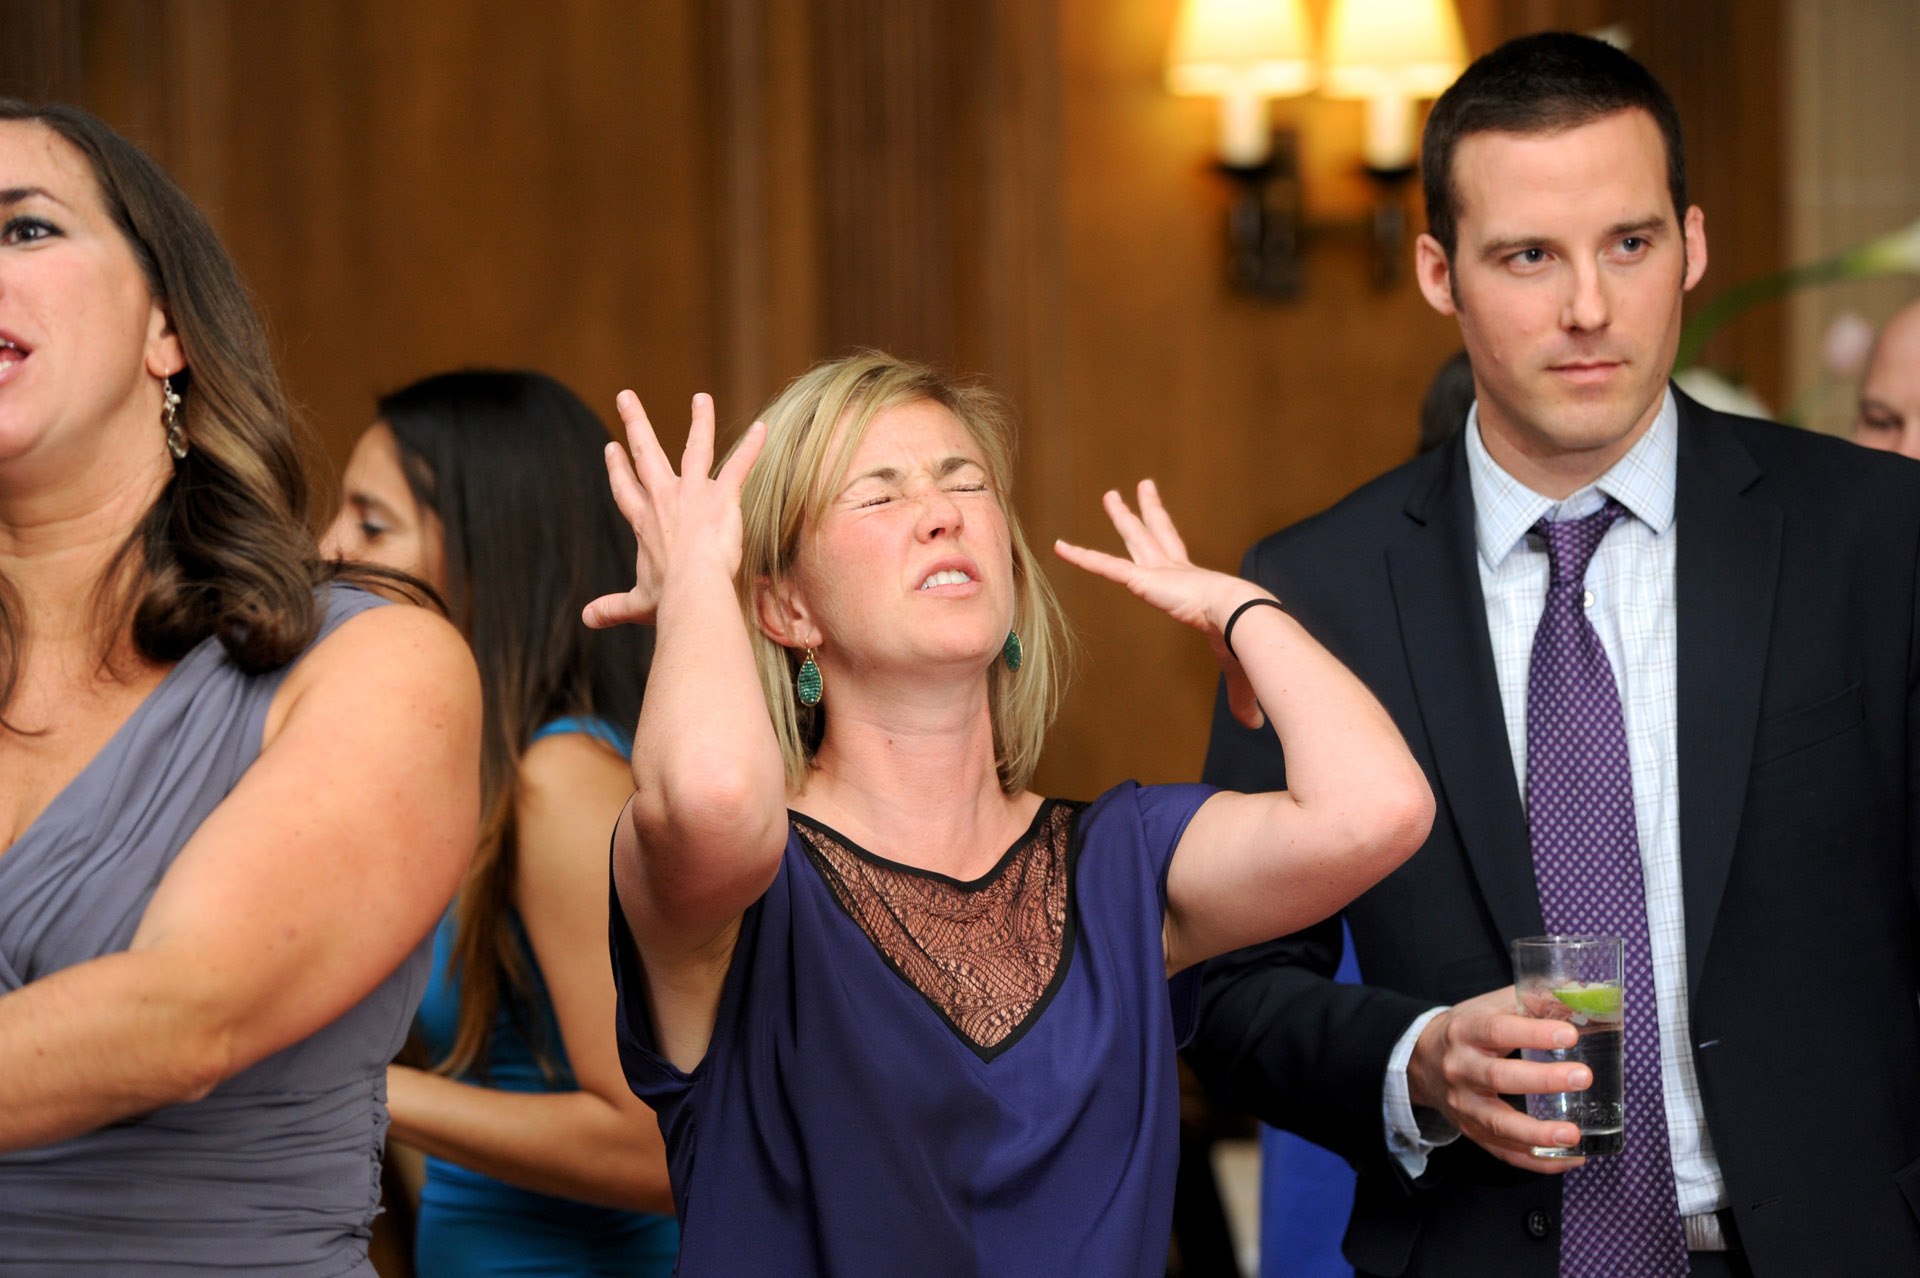 Michigan wedding in Detroit, Michigan, features guests dramatically dancing at the DAC or the Detroit Athletic Club.